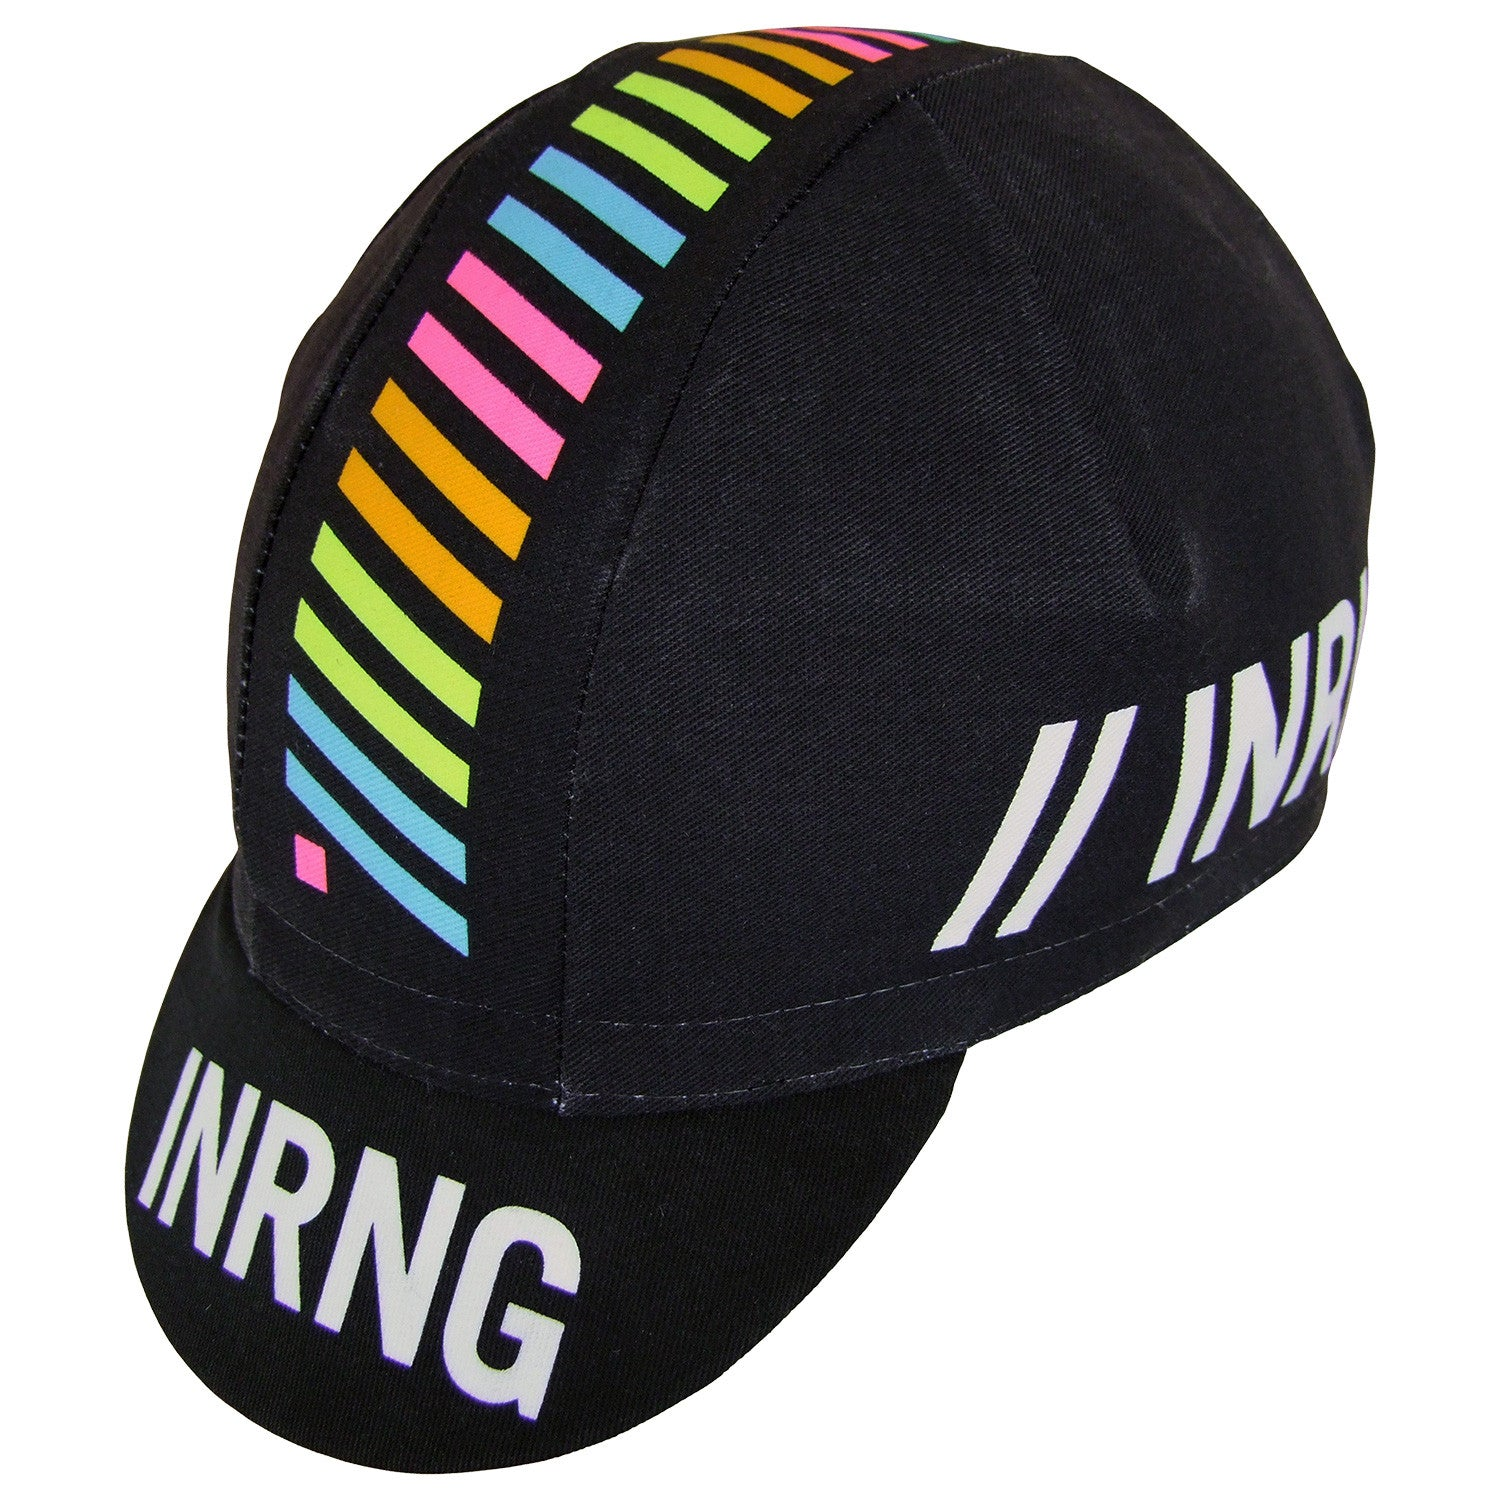 INRNG Supporters Team Cotton Cycling Cap